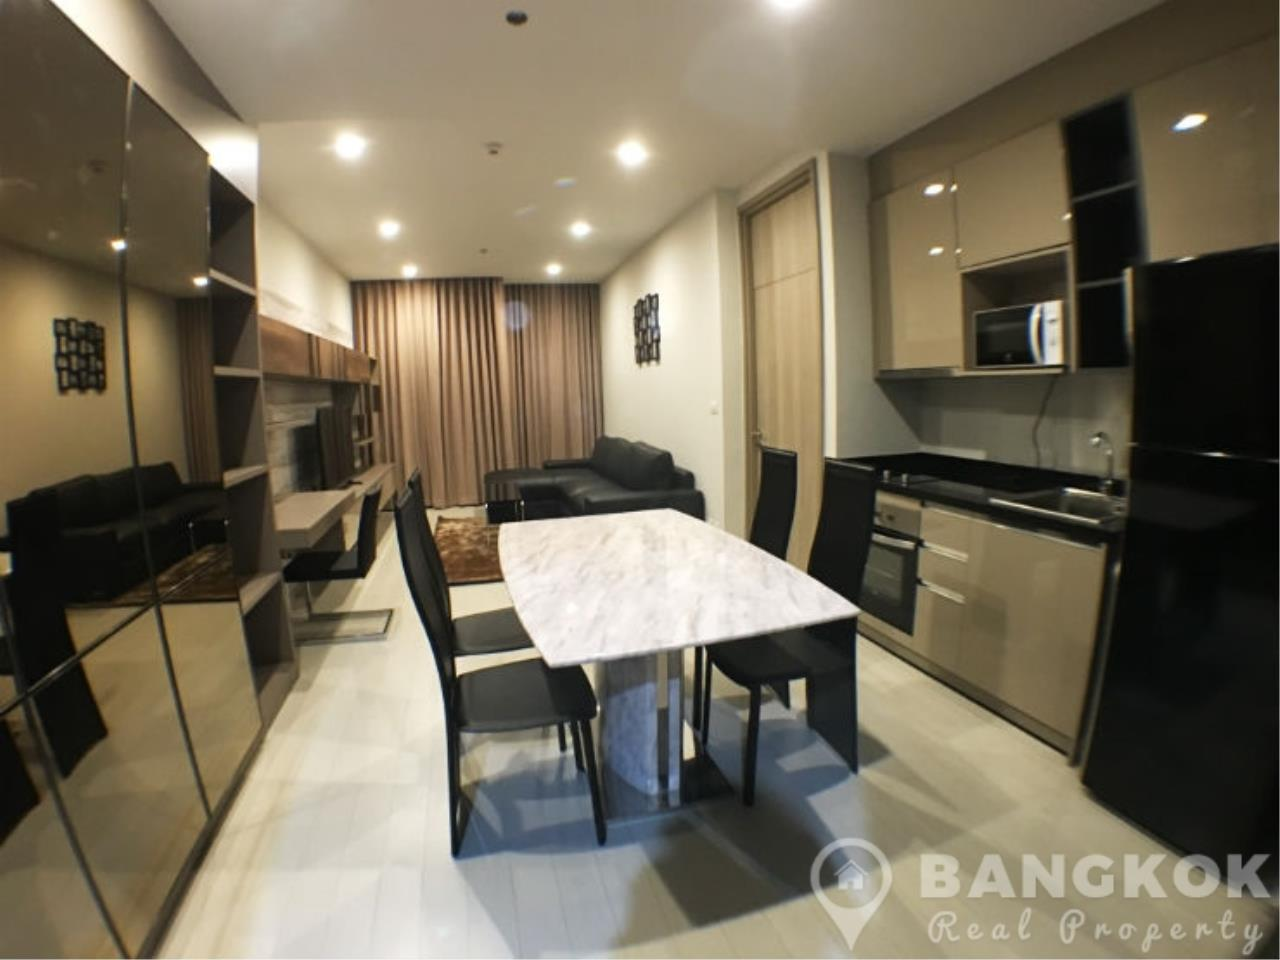 Bangkok Real Property Agency's Noble Ploenchit | Stunning 1st Rental Spacious 1 Bed at BTS 1